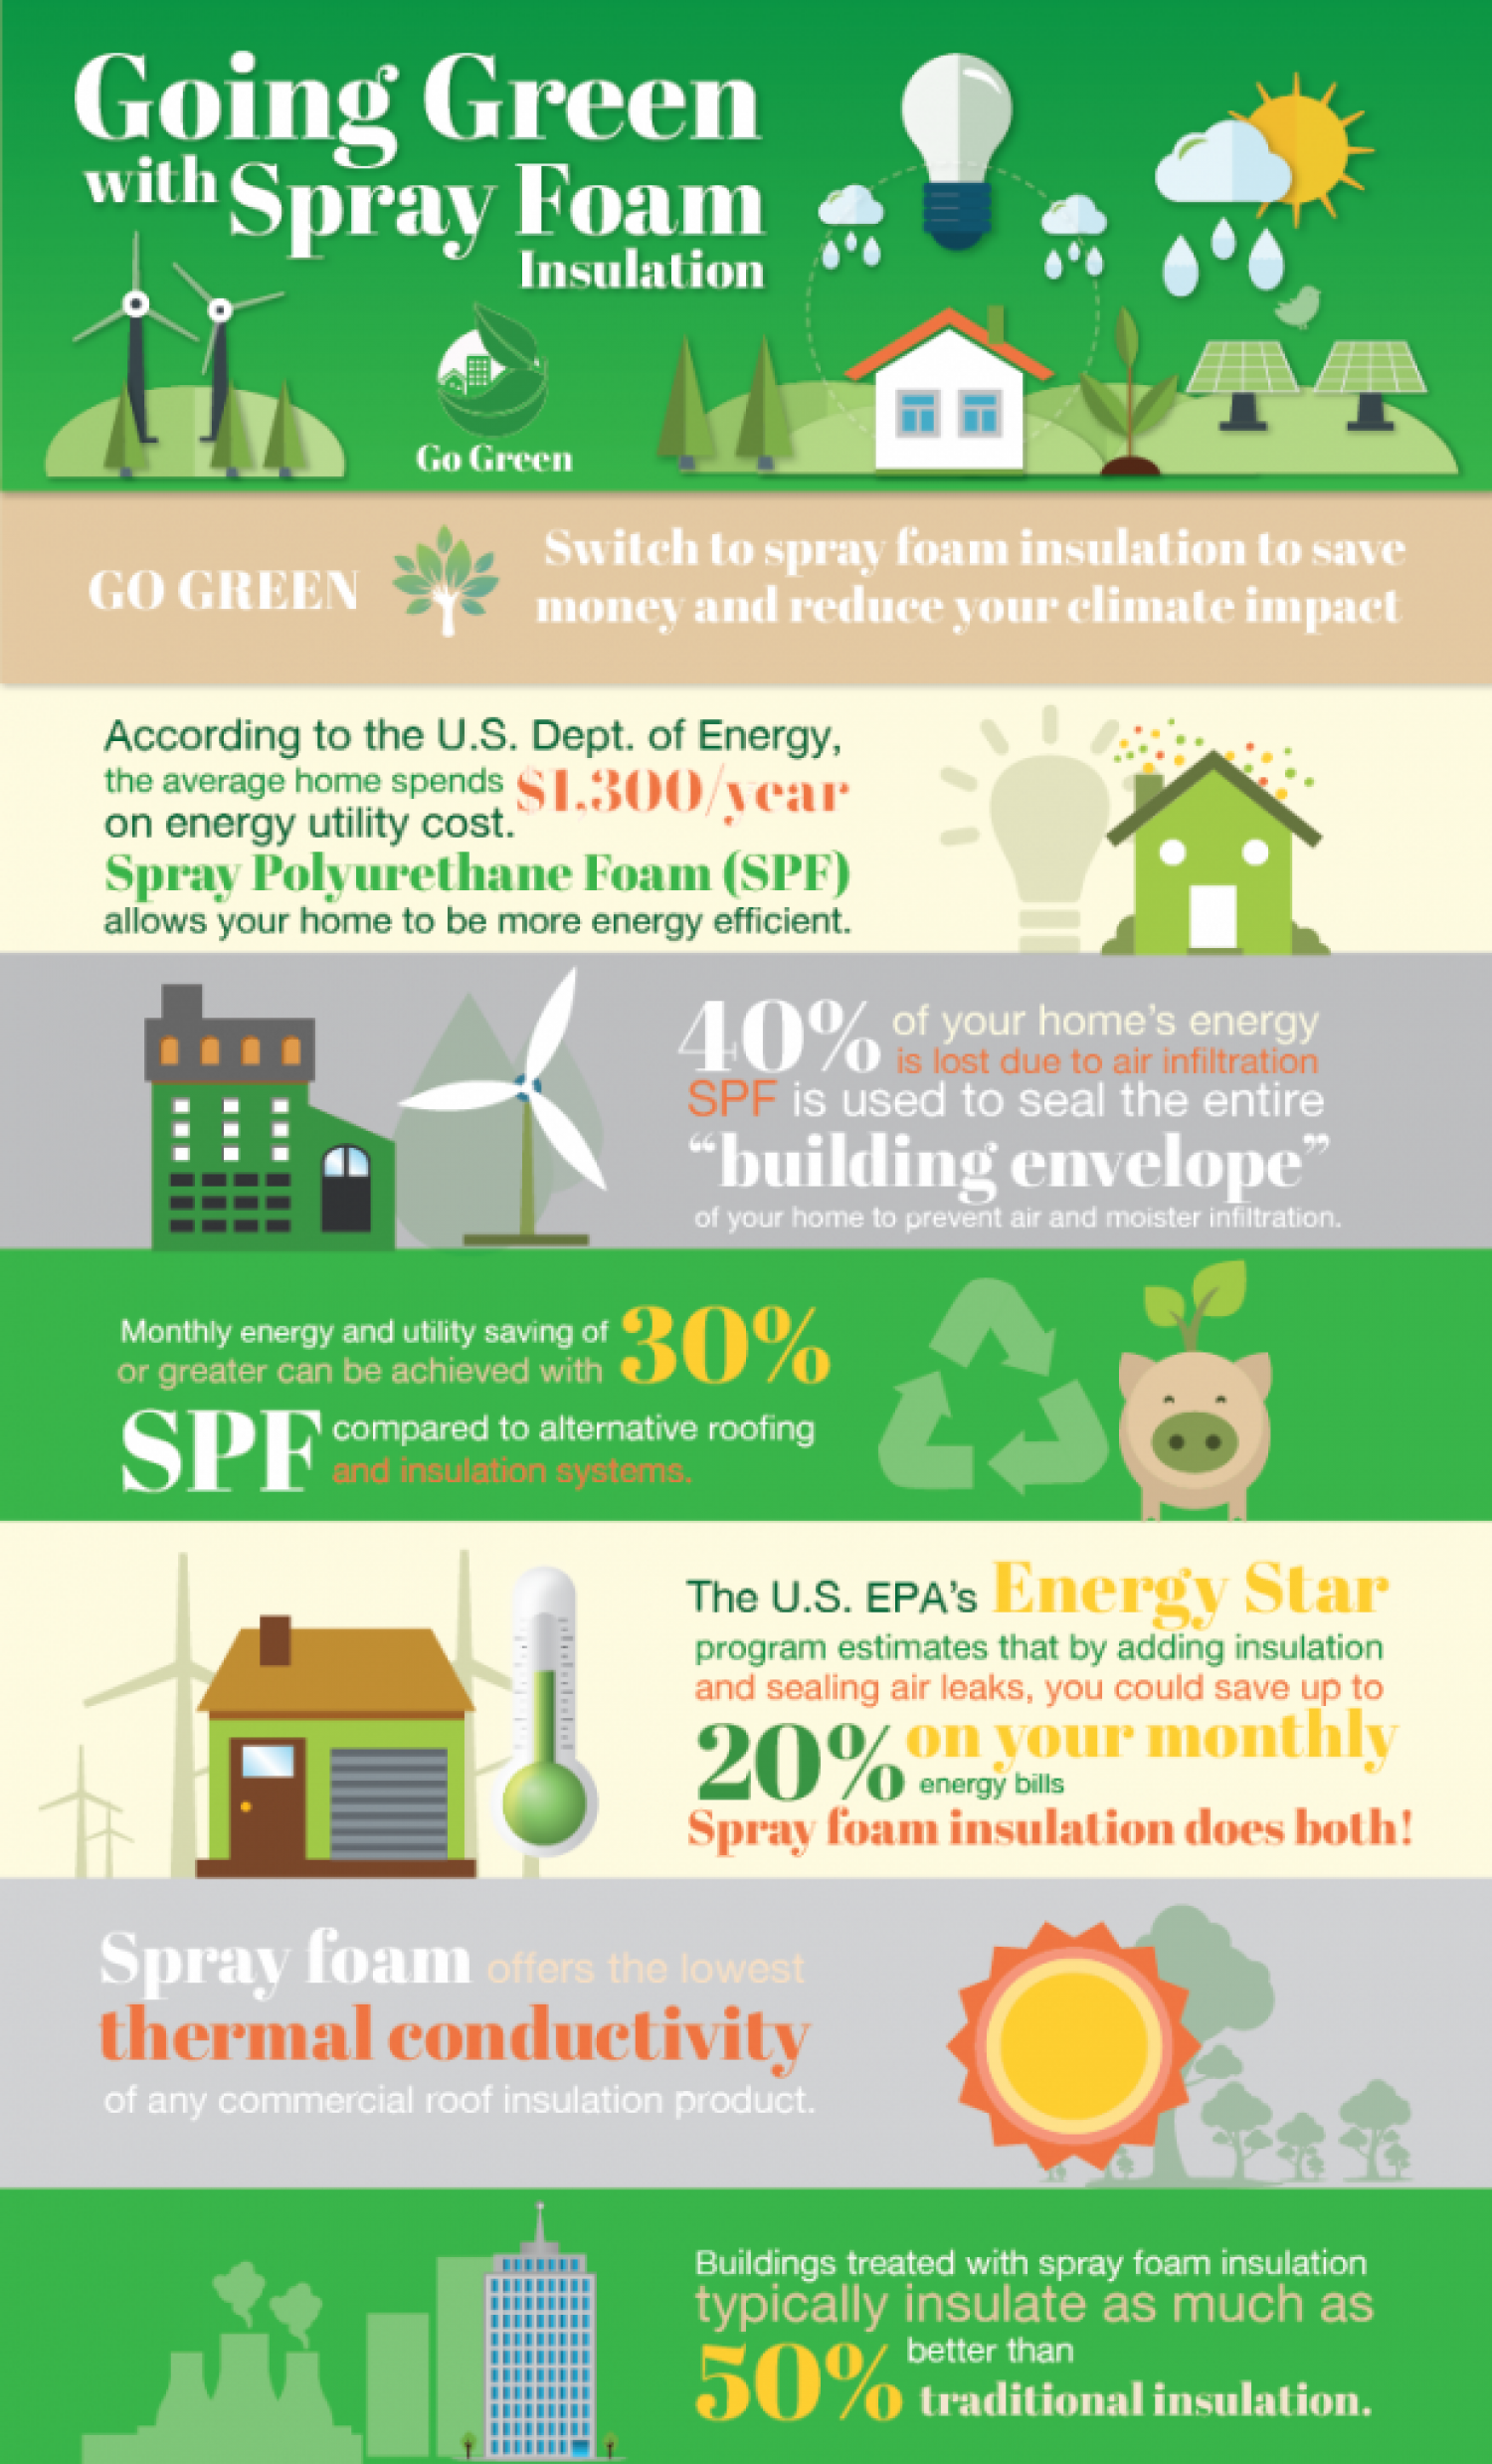 How Does Spray Foam Insulation Benefit